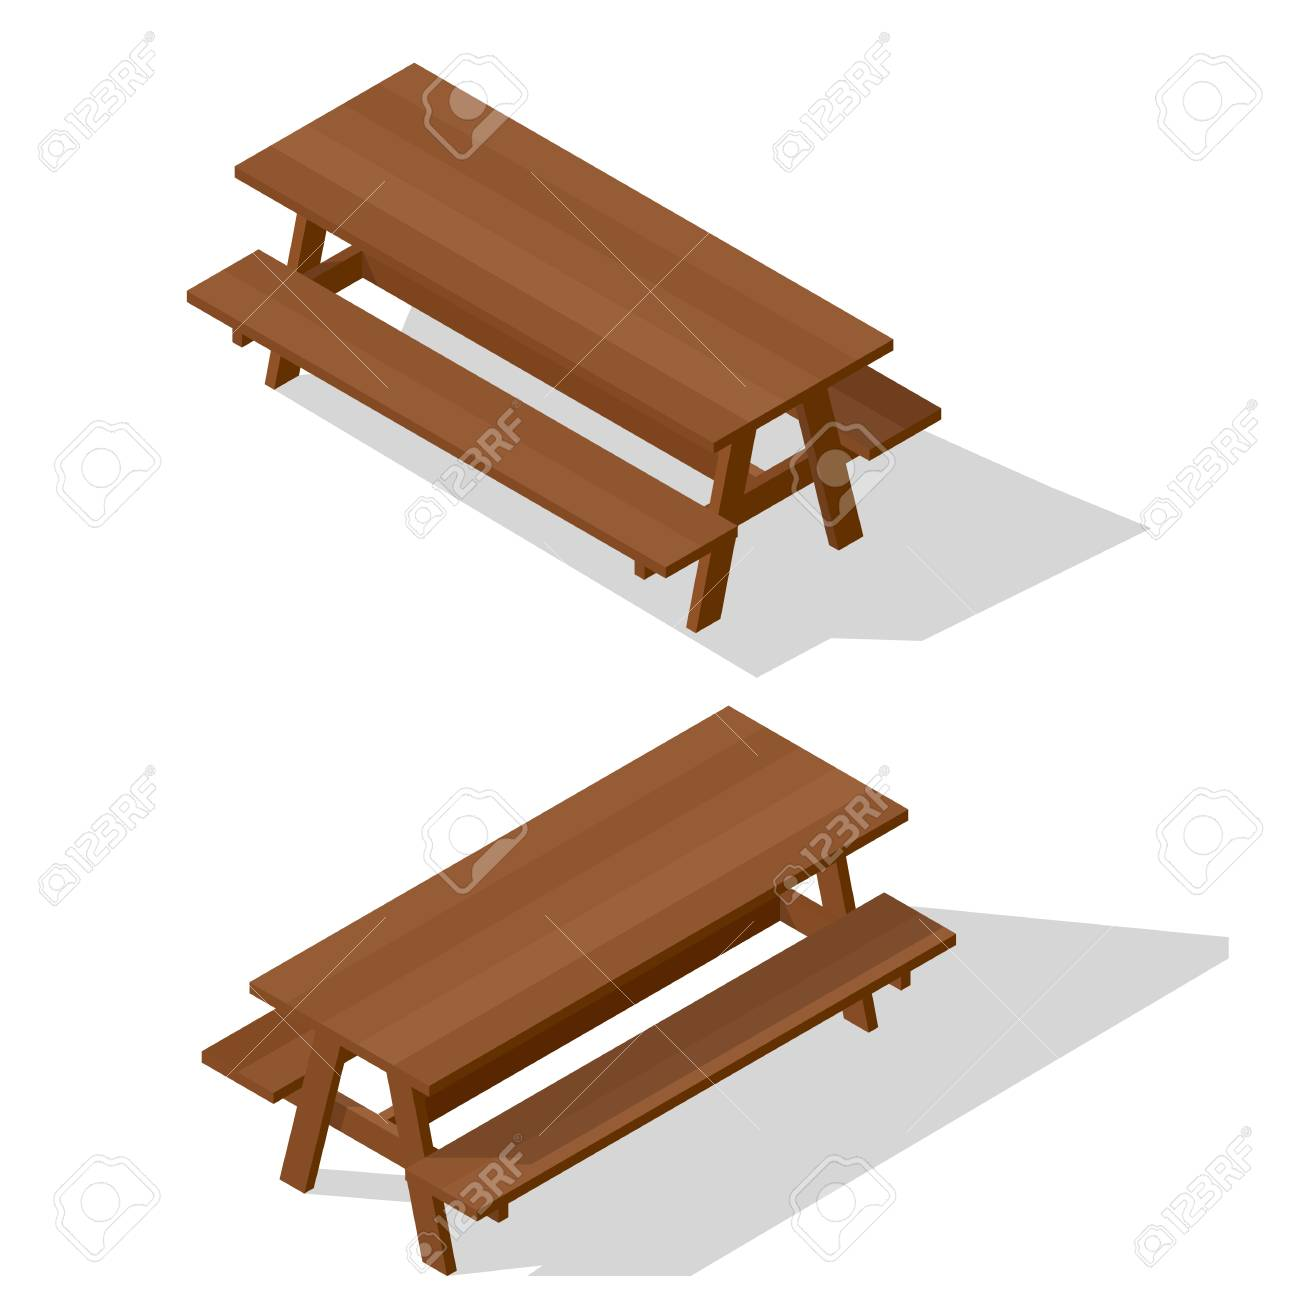 Surprising Isometric Street Wooden Table With Benches 3D Vector Outdoor Squirreltailoven Fun Painted Chair Ideas Images Squirreltailovenorg